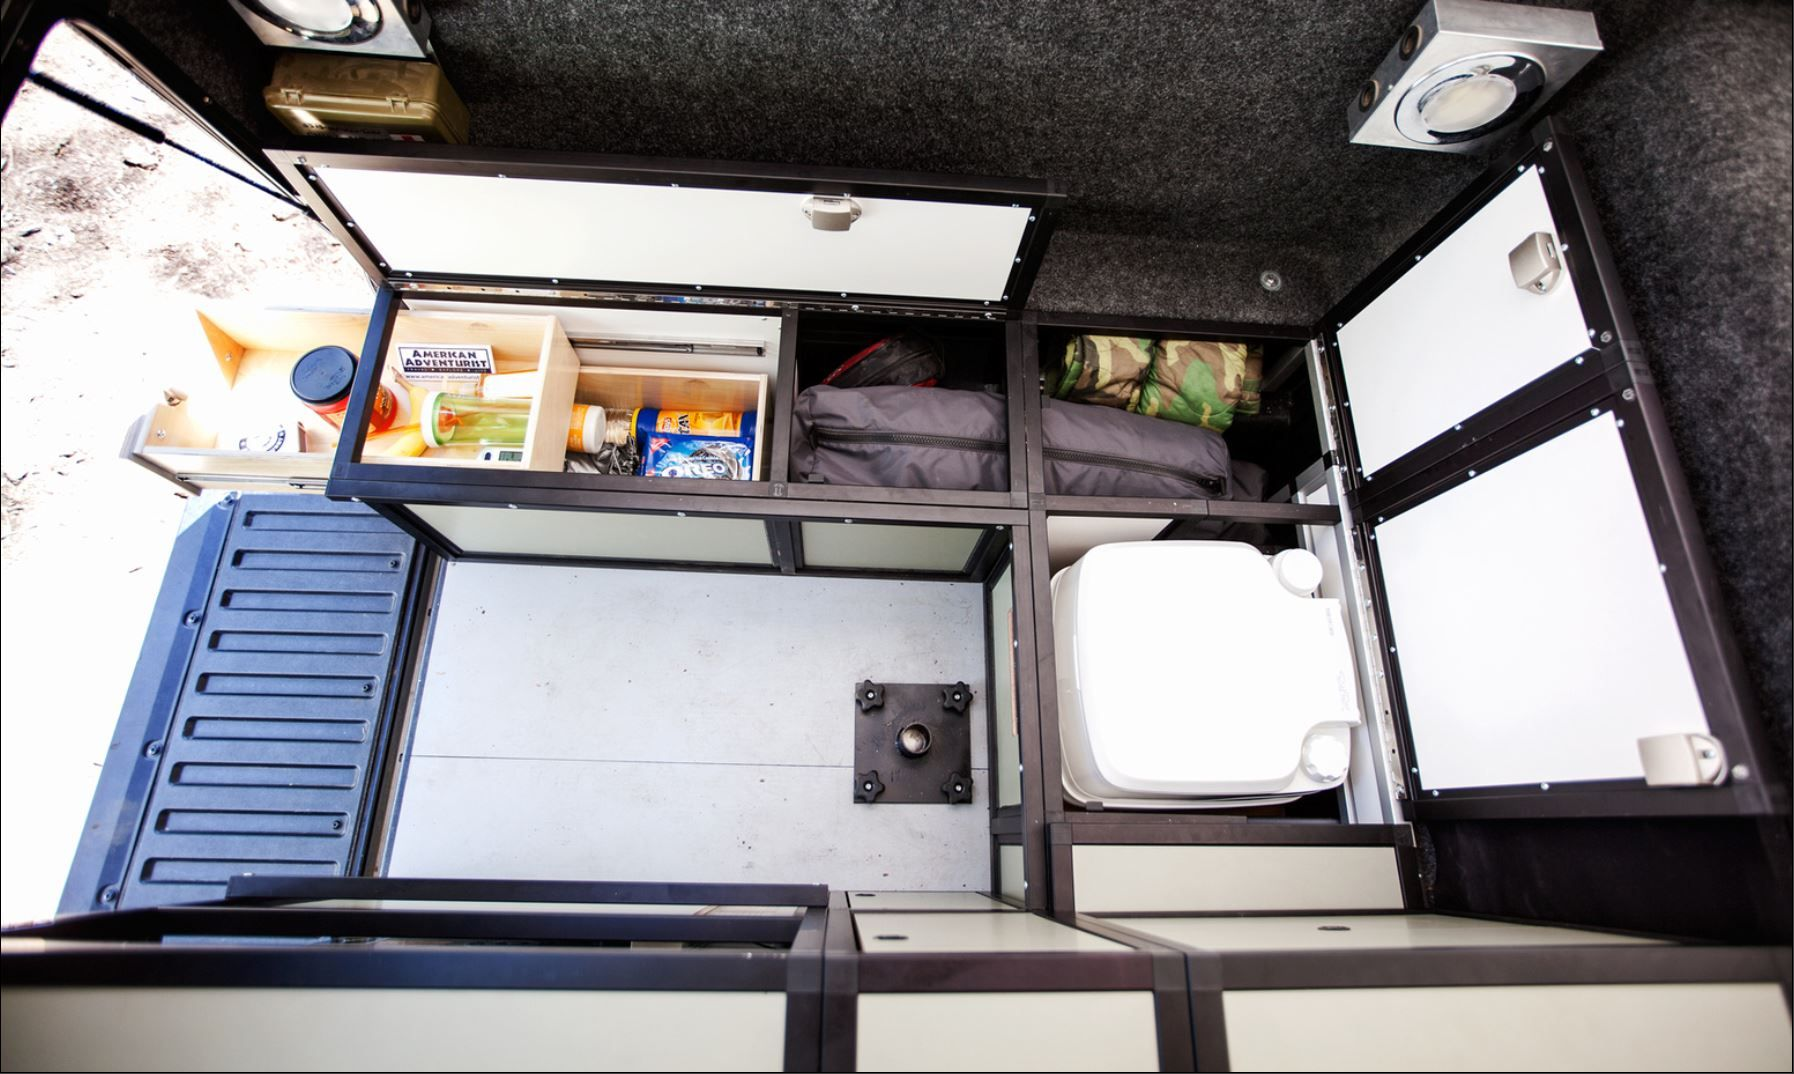 Goose Gear storage solutions view of cabinet interiors